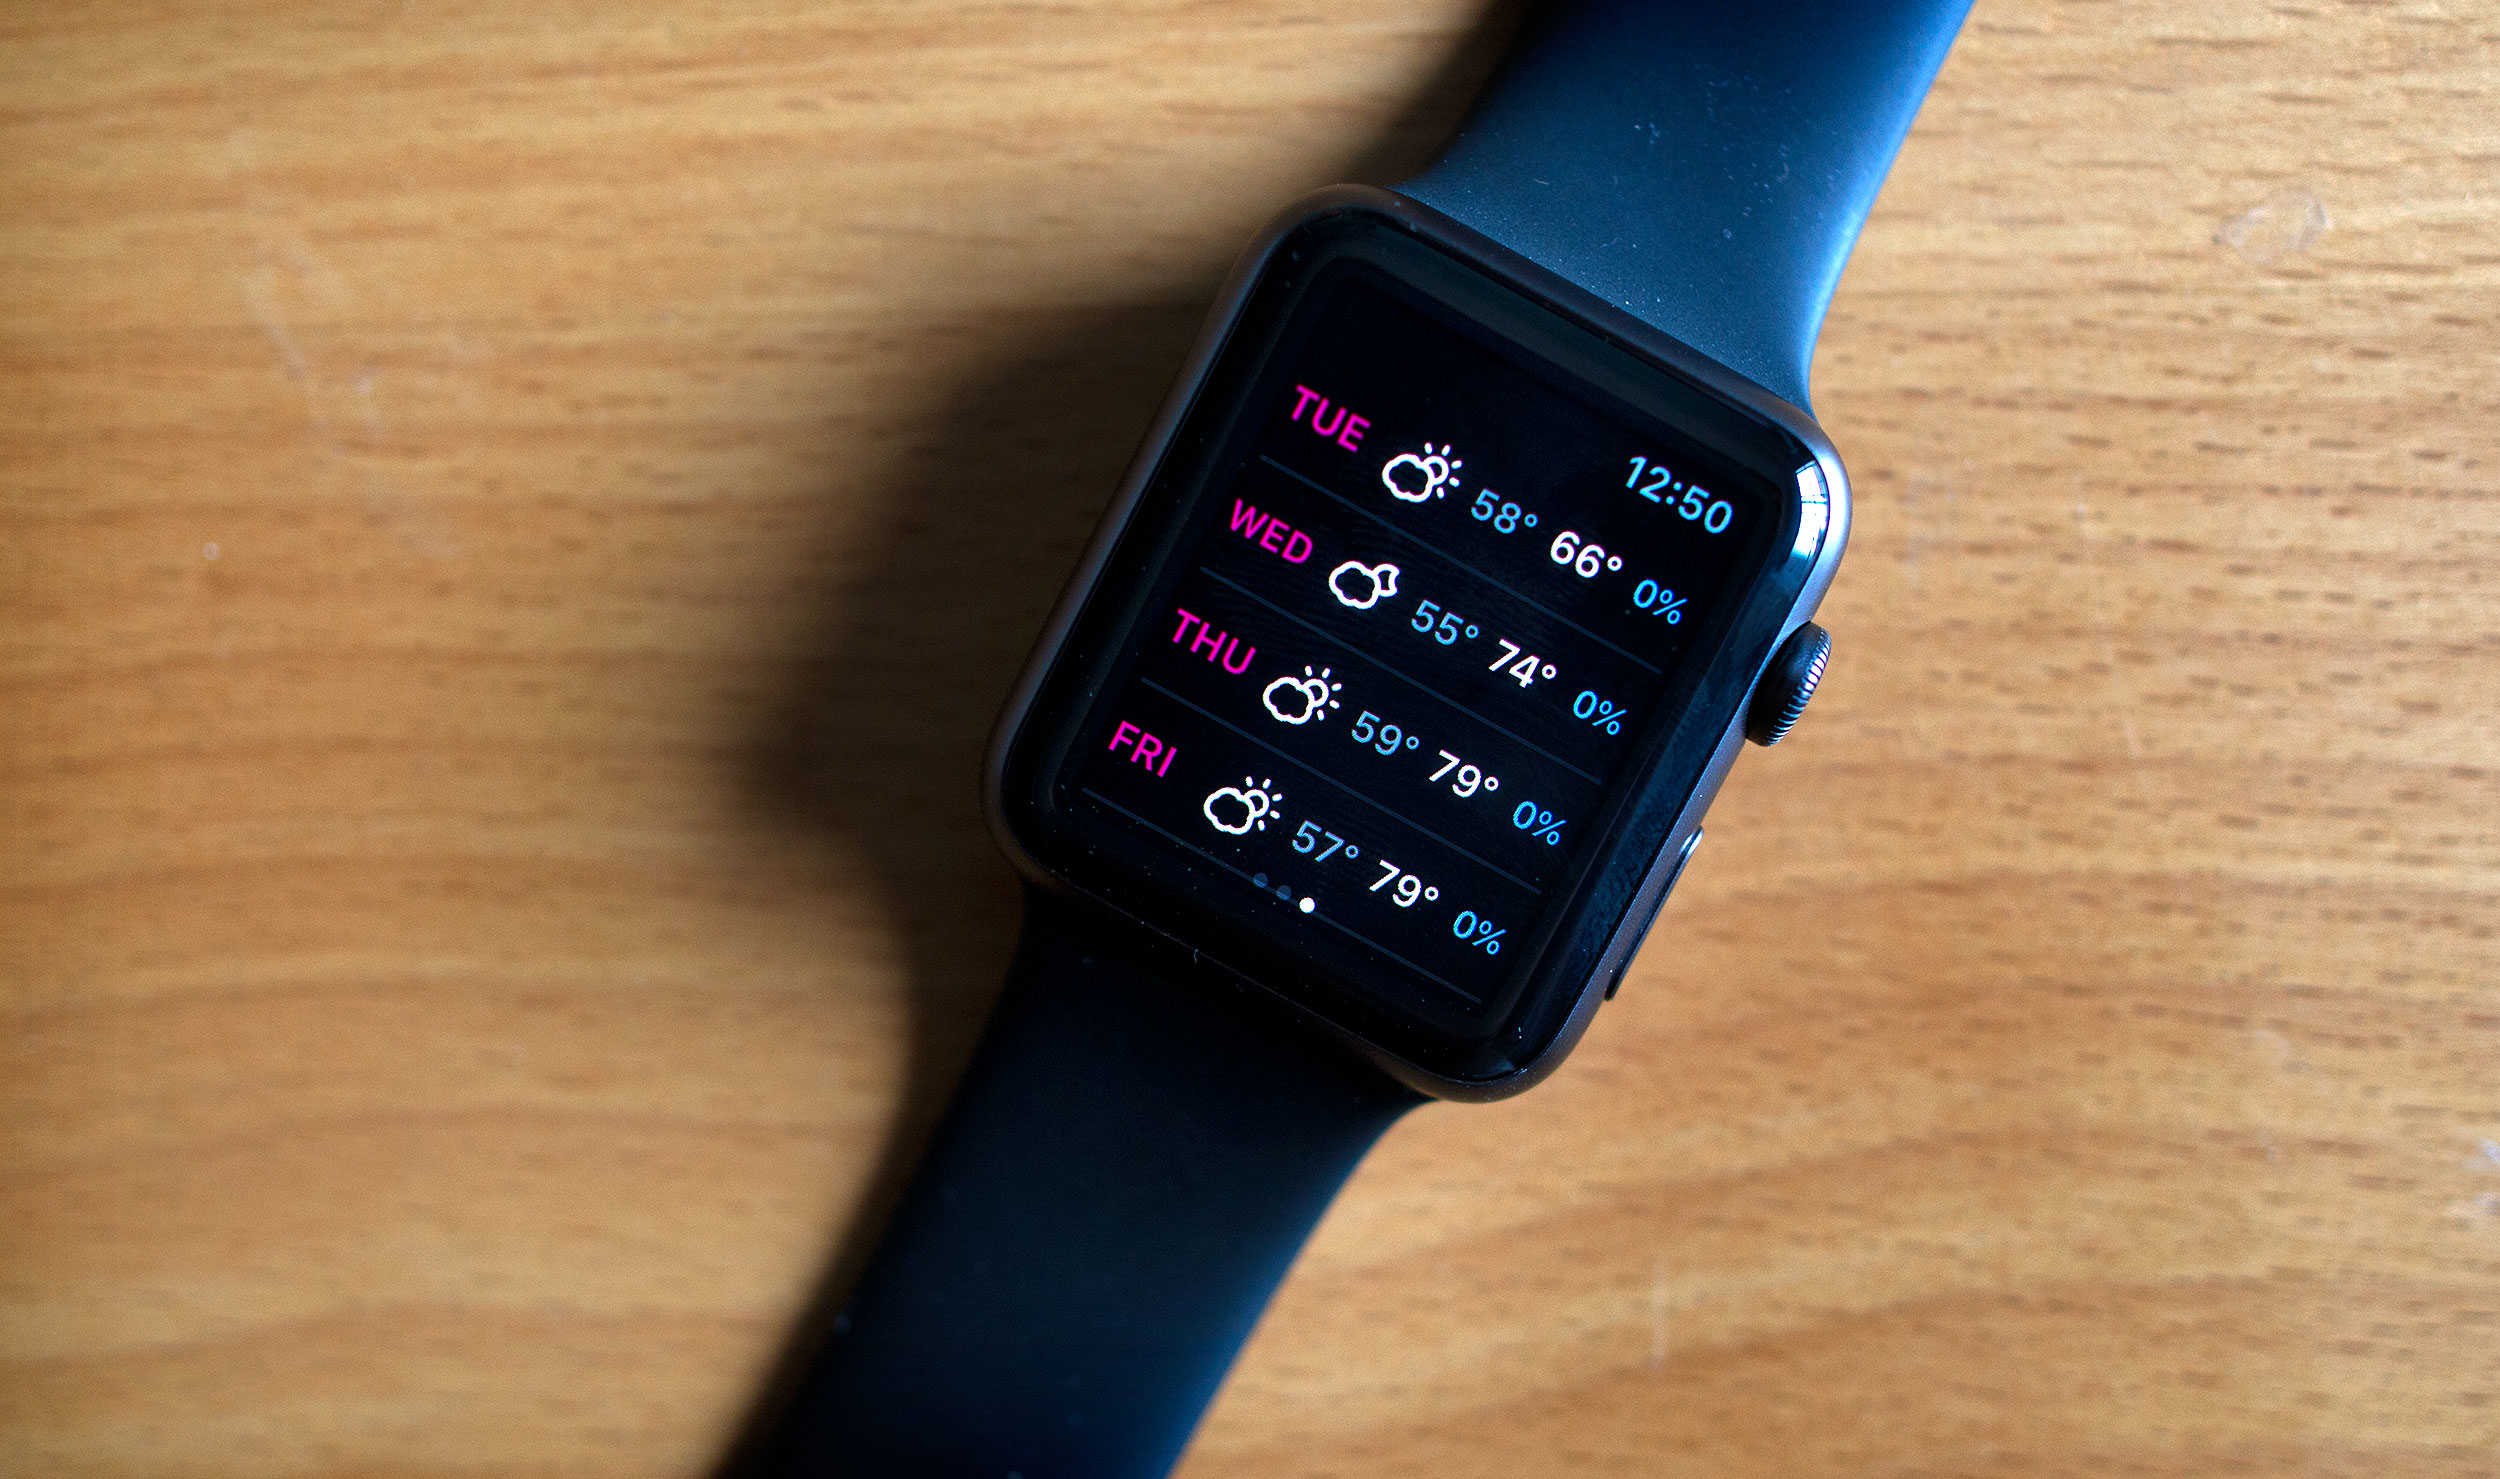 Native apps, like Dark Sky, take advantage of the new OS for Apple Watch.